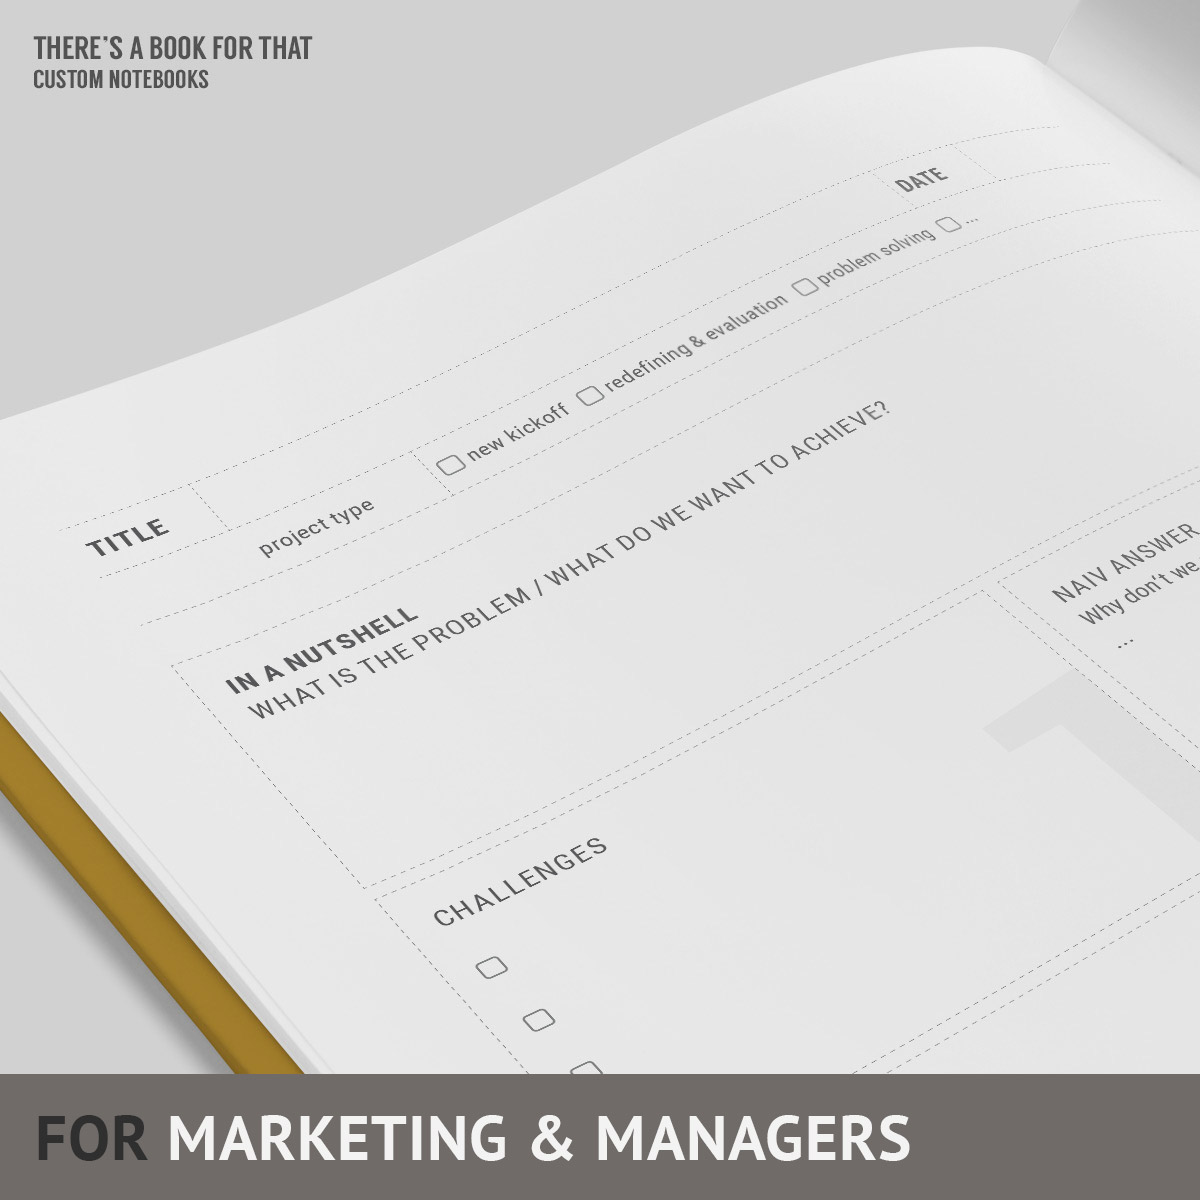 A project management notebook including brainstorming, presumptions, swot (strength and weakness) and much more followed up by a dedicated project management with todo list and milestones.